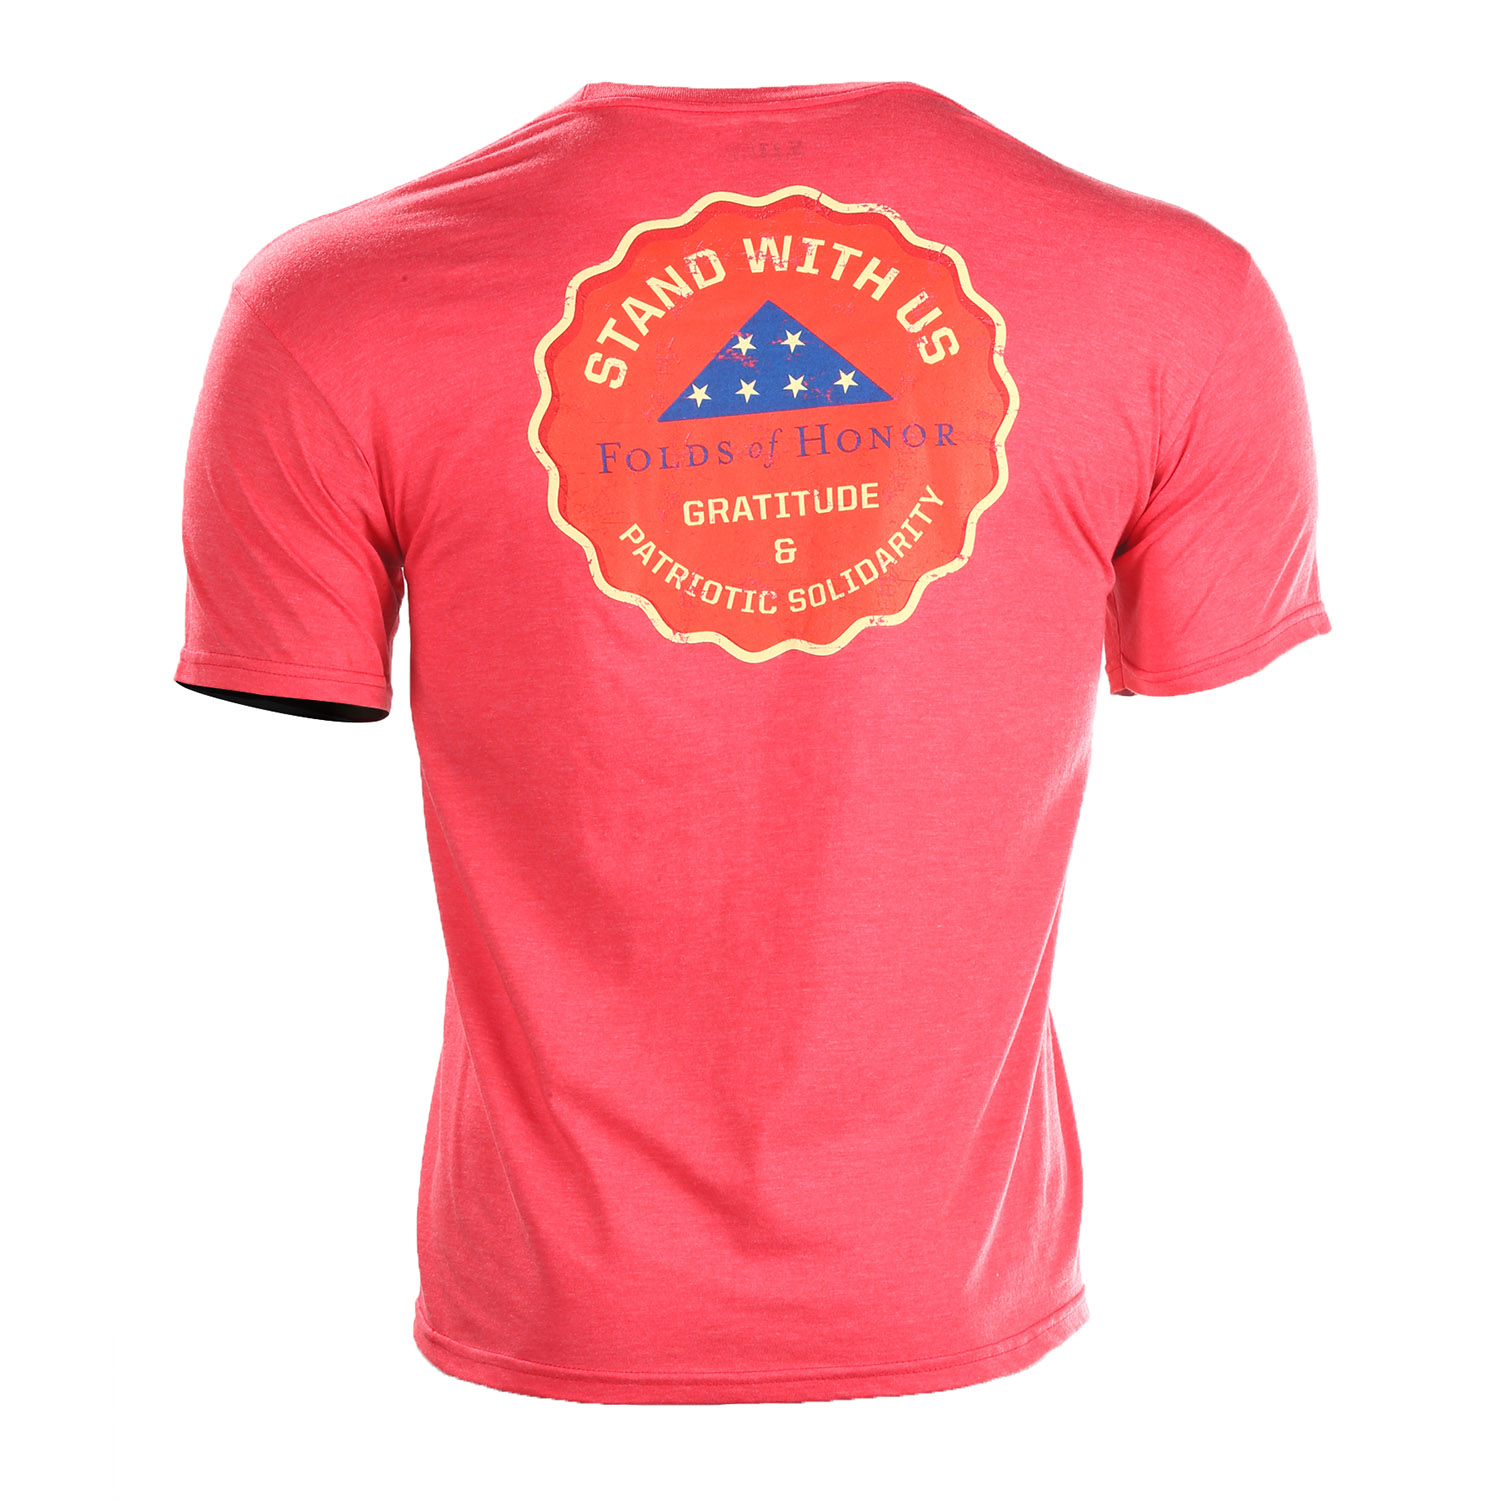 5.11 Tactical Folds of Honor tee